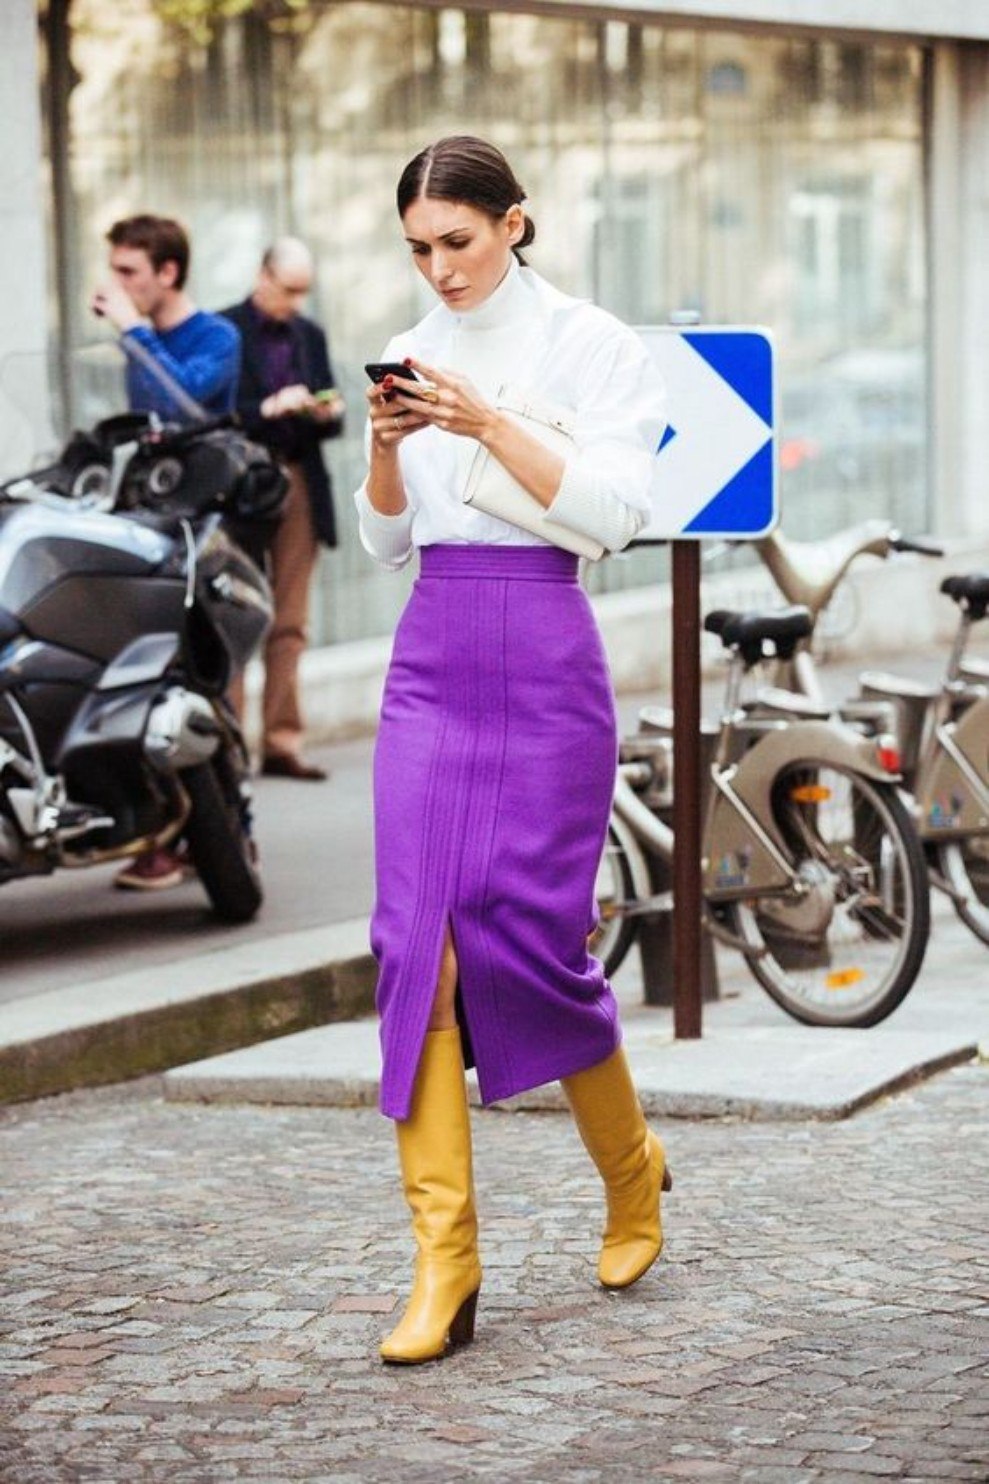 Pantone Color Of The Year 2018: Meet Ultra Violet 18-3838!